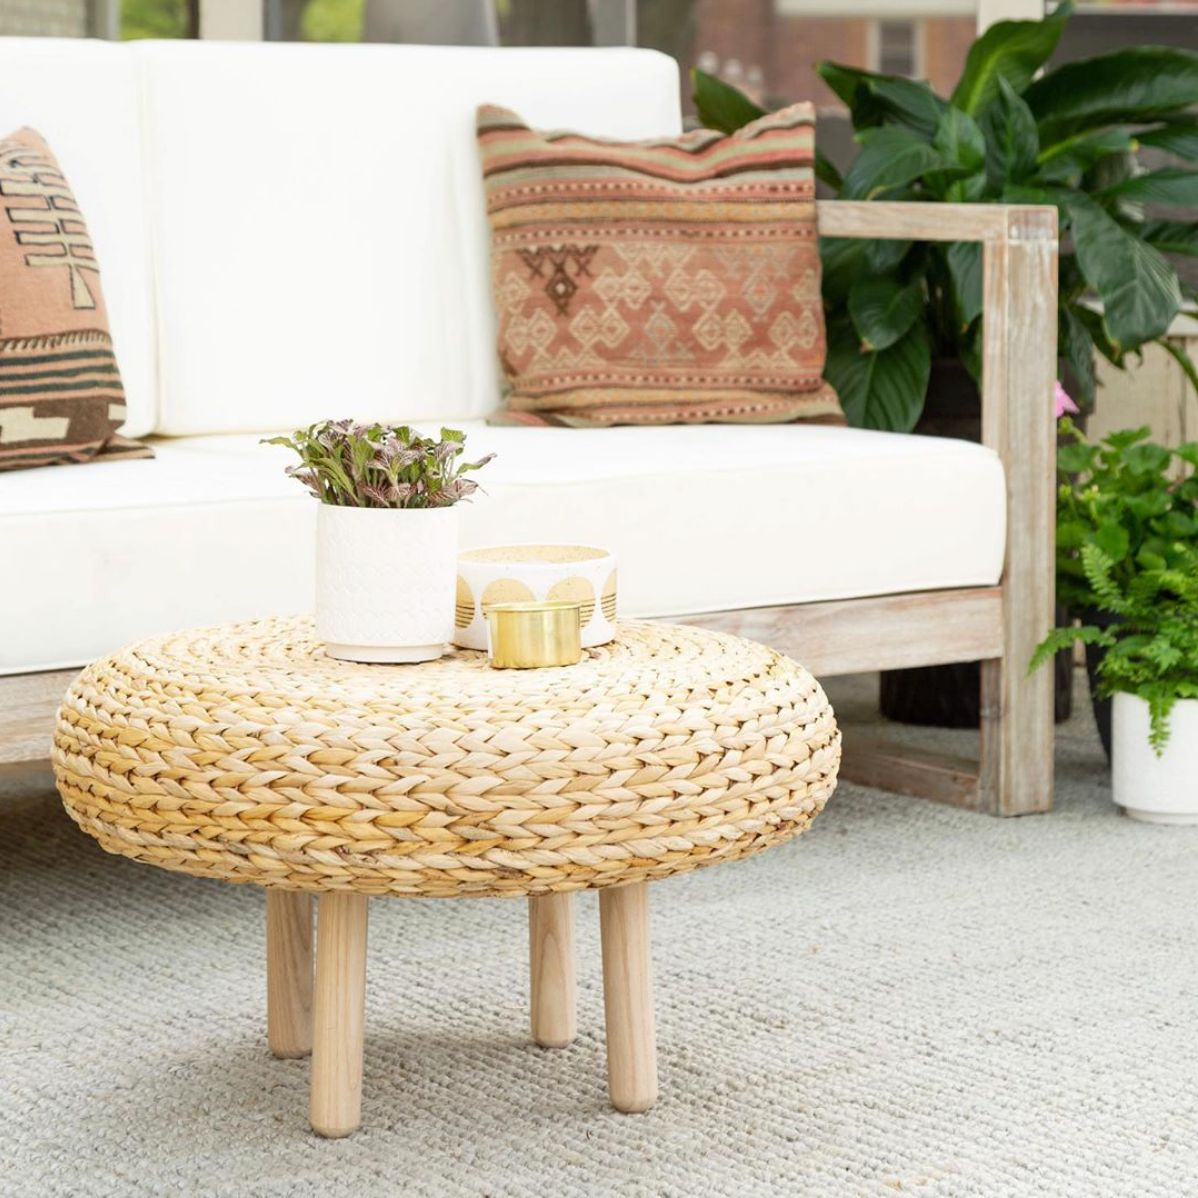 9 IKEA hacks for sprucing up your backyard on a budget